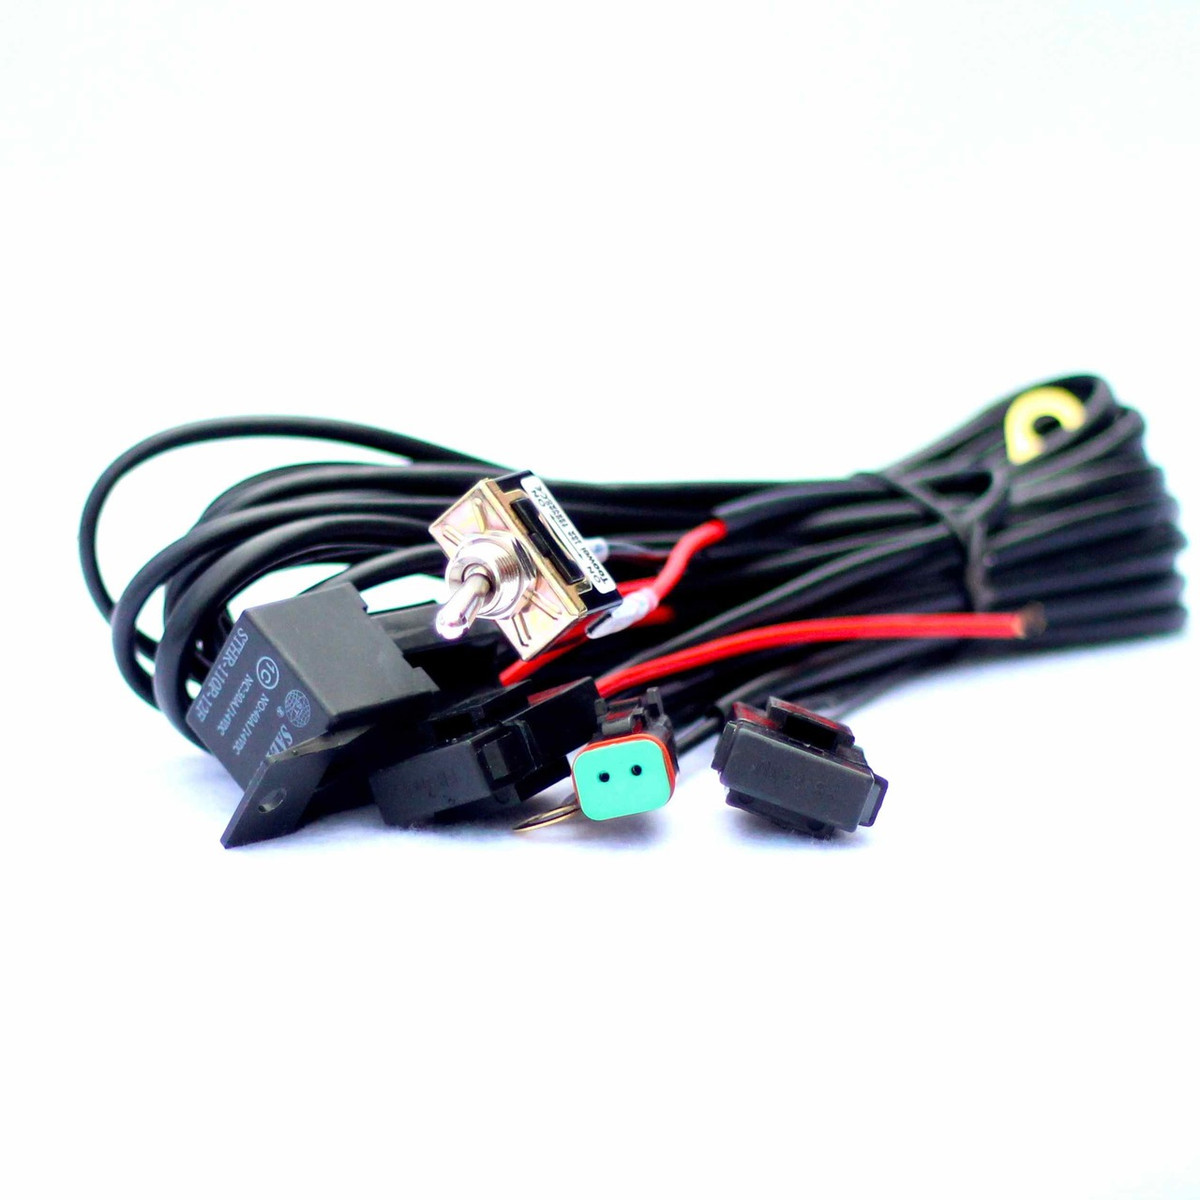 WH20_1__30625.1396140977?c=2 duck boat wiring harness for southern lite led boat lite boat wiring harness at gsmx.co